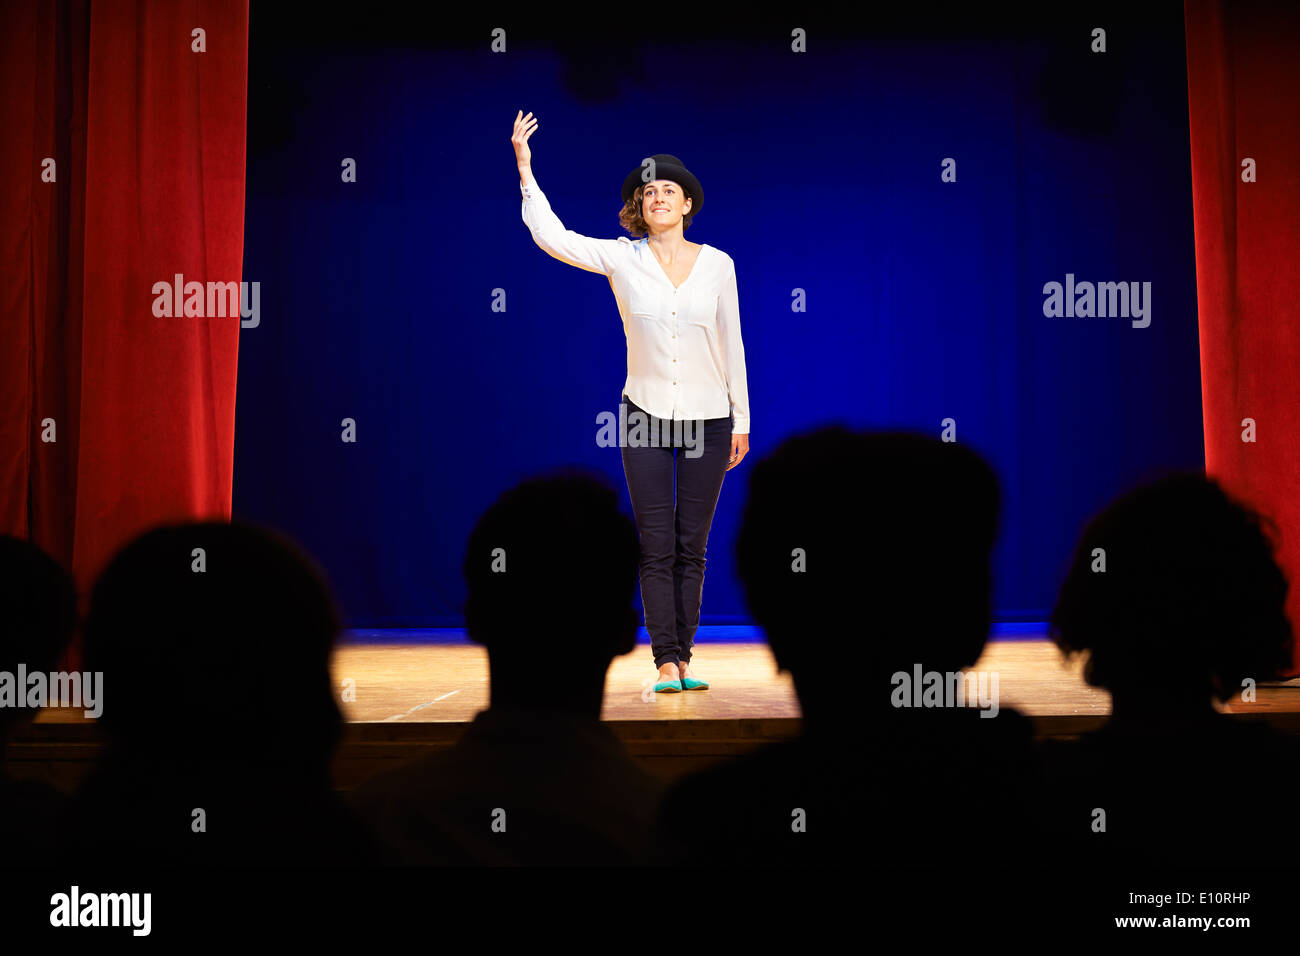 Arts and entertainment in theatre with actress on stage acting in play for audience - Stock Image